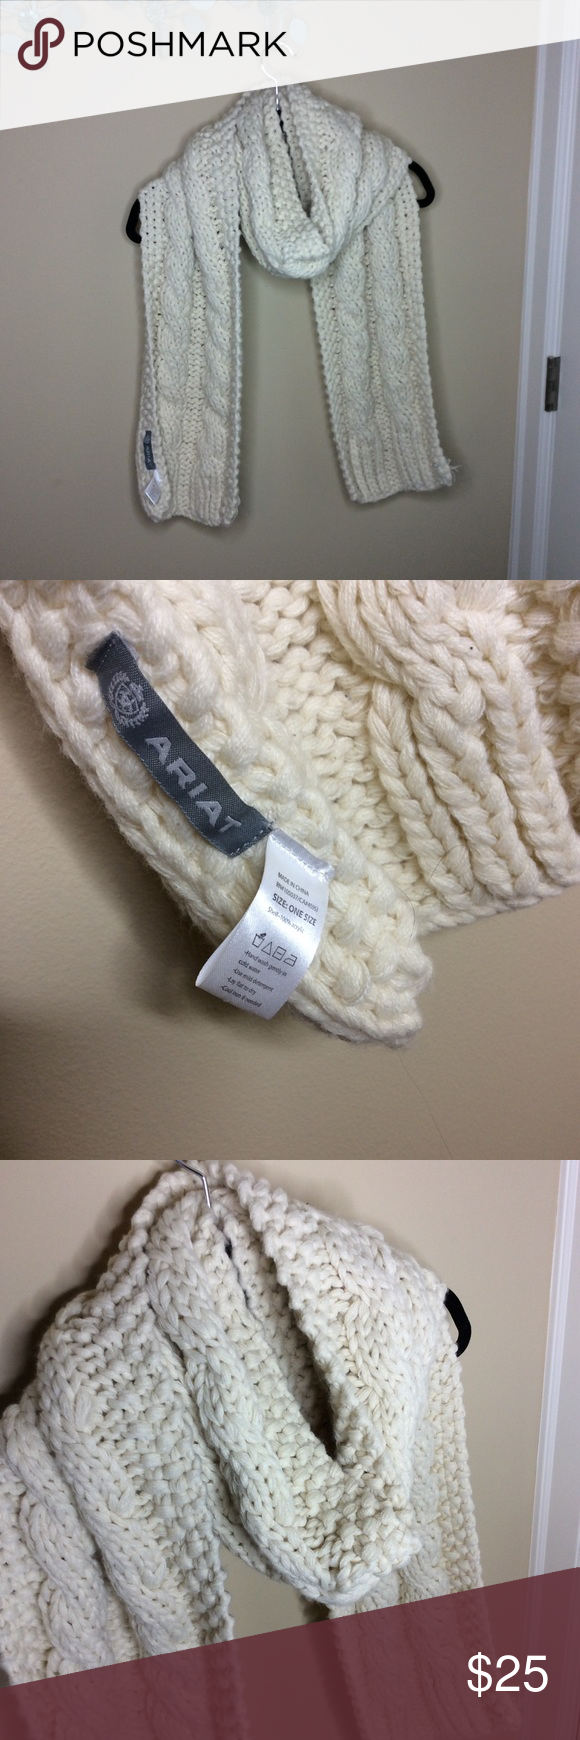 Ariat cream knit scarf Worn for a year but clean and good condition! Super warm and stylish. Ariat Accessories Scarves & Wraps